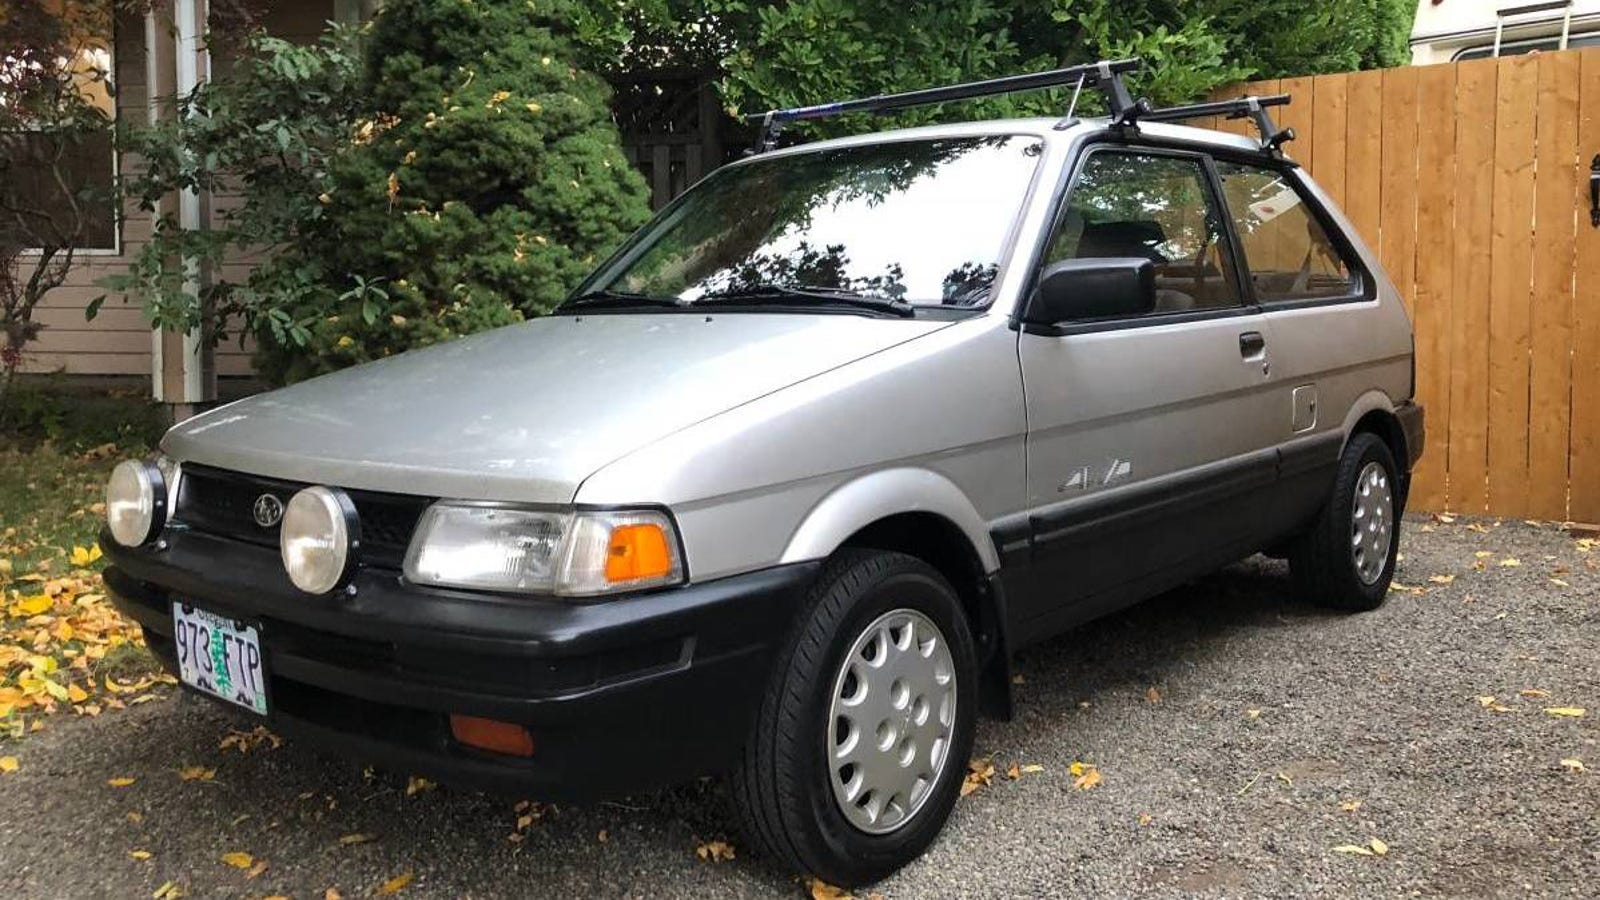 Could This 1990 Subaru Justy AWD Fully Justify its $5,300 Price?Cover Your Entire Desk with This Giant Mouse Pad For Just $12Wednesday's Best Deals: Luggage Locks, REI Clearance, Nuun Gold Box, and More